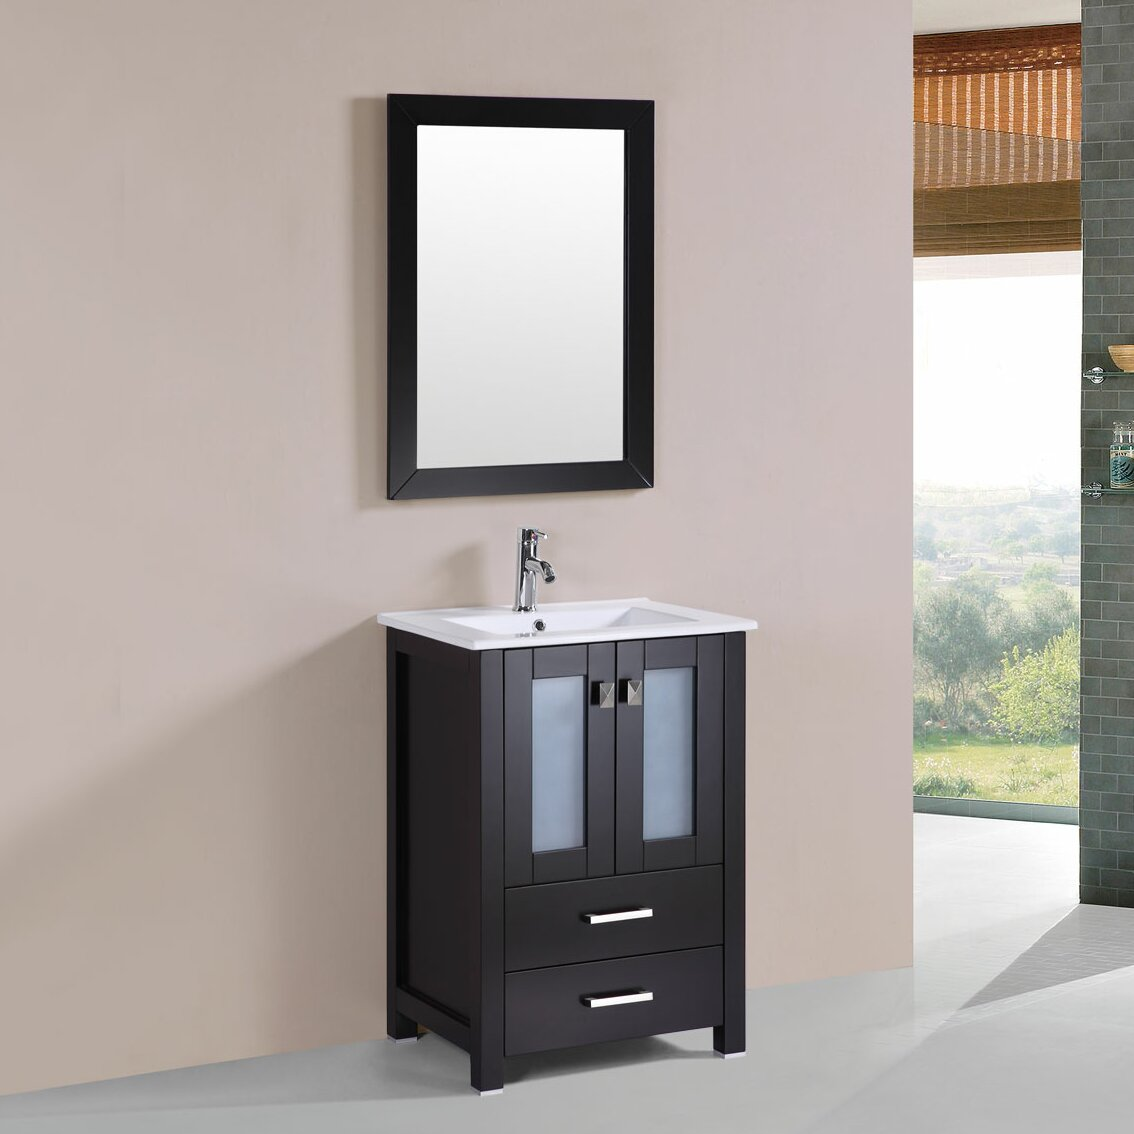 Pacificcollection Newport 24 Single Modern Bathroom Vanity Set With Mirror Reviews Wayfair